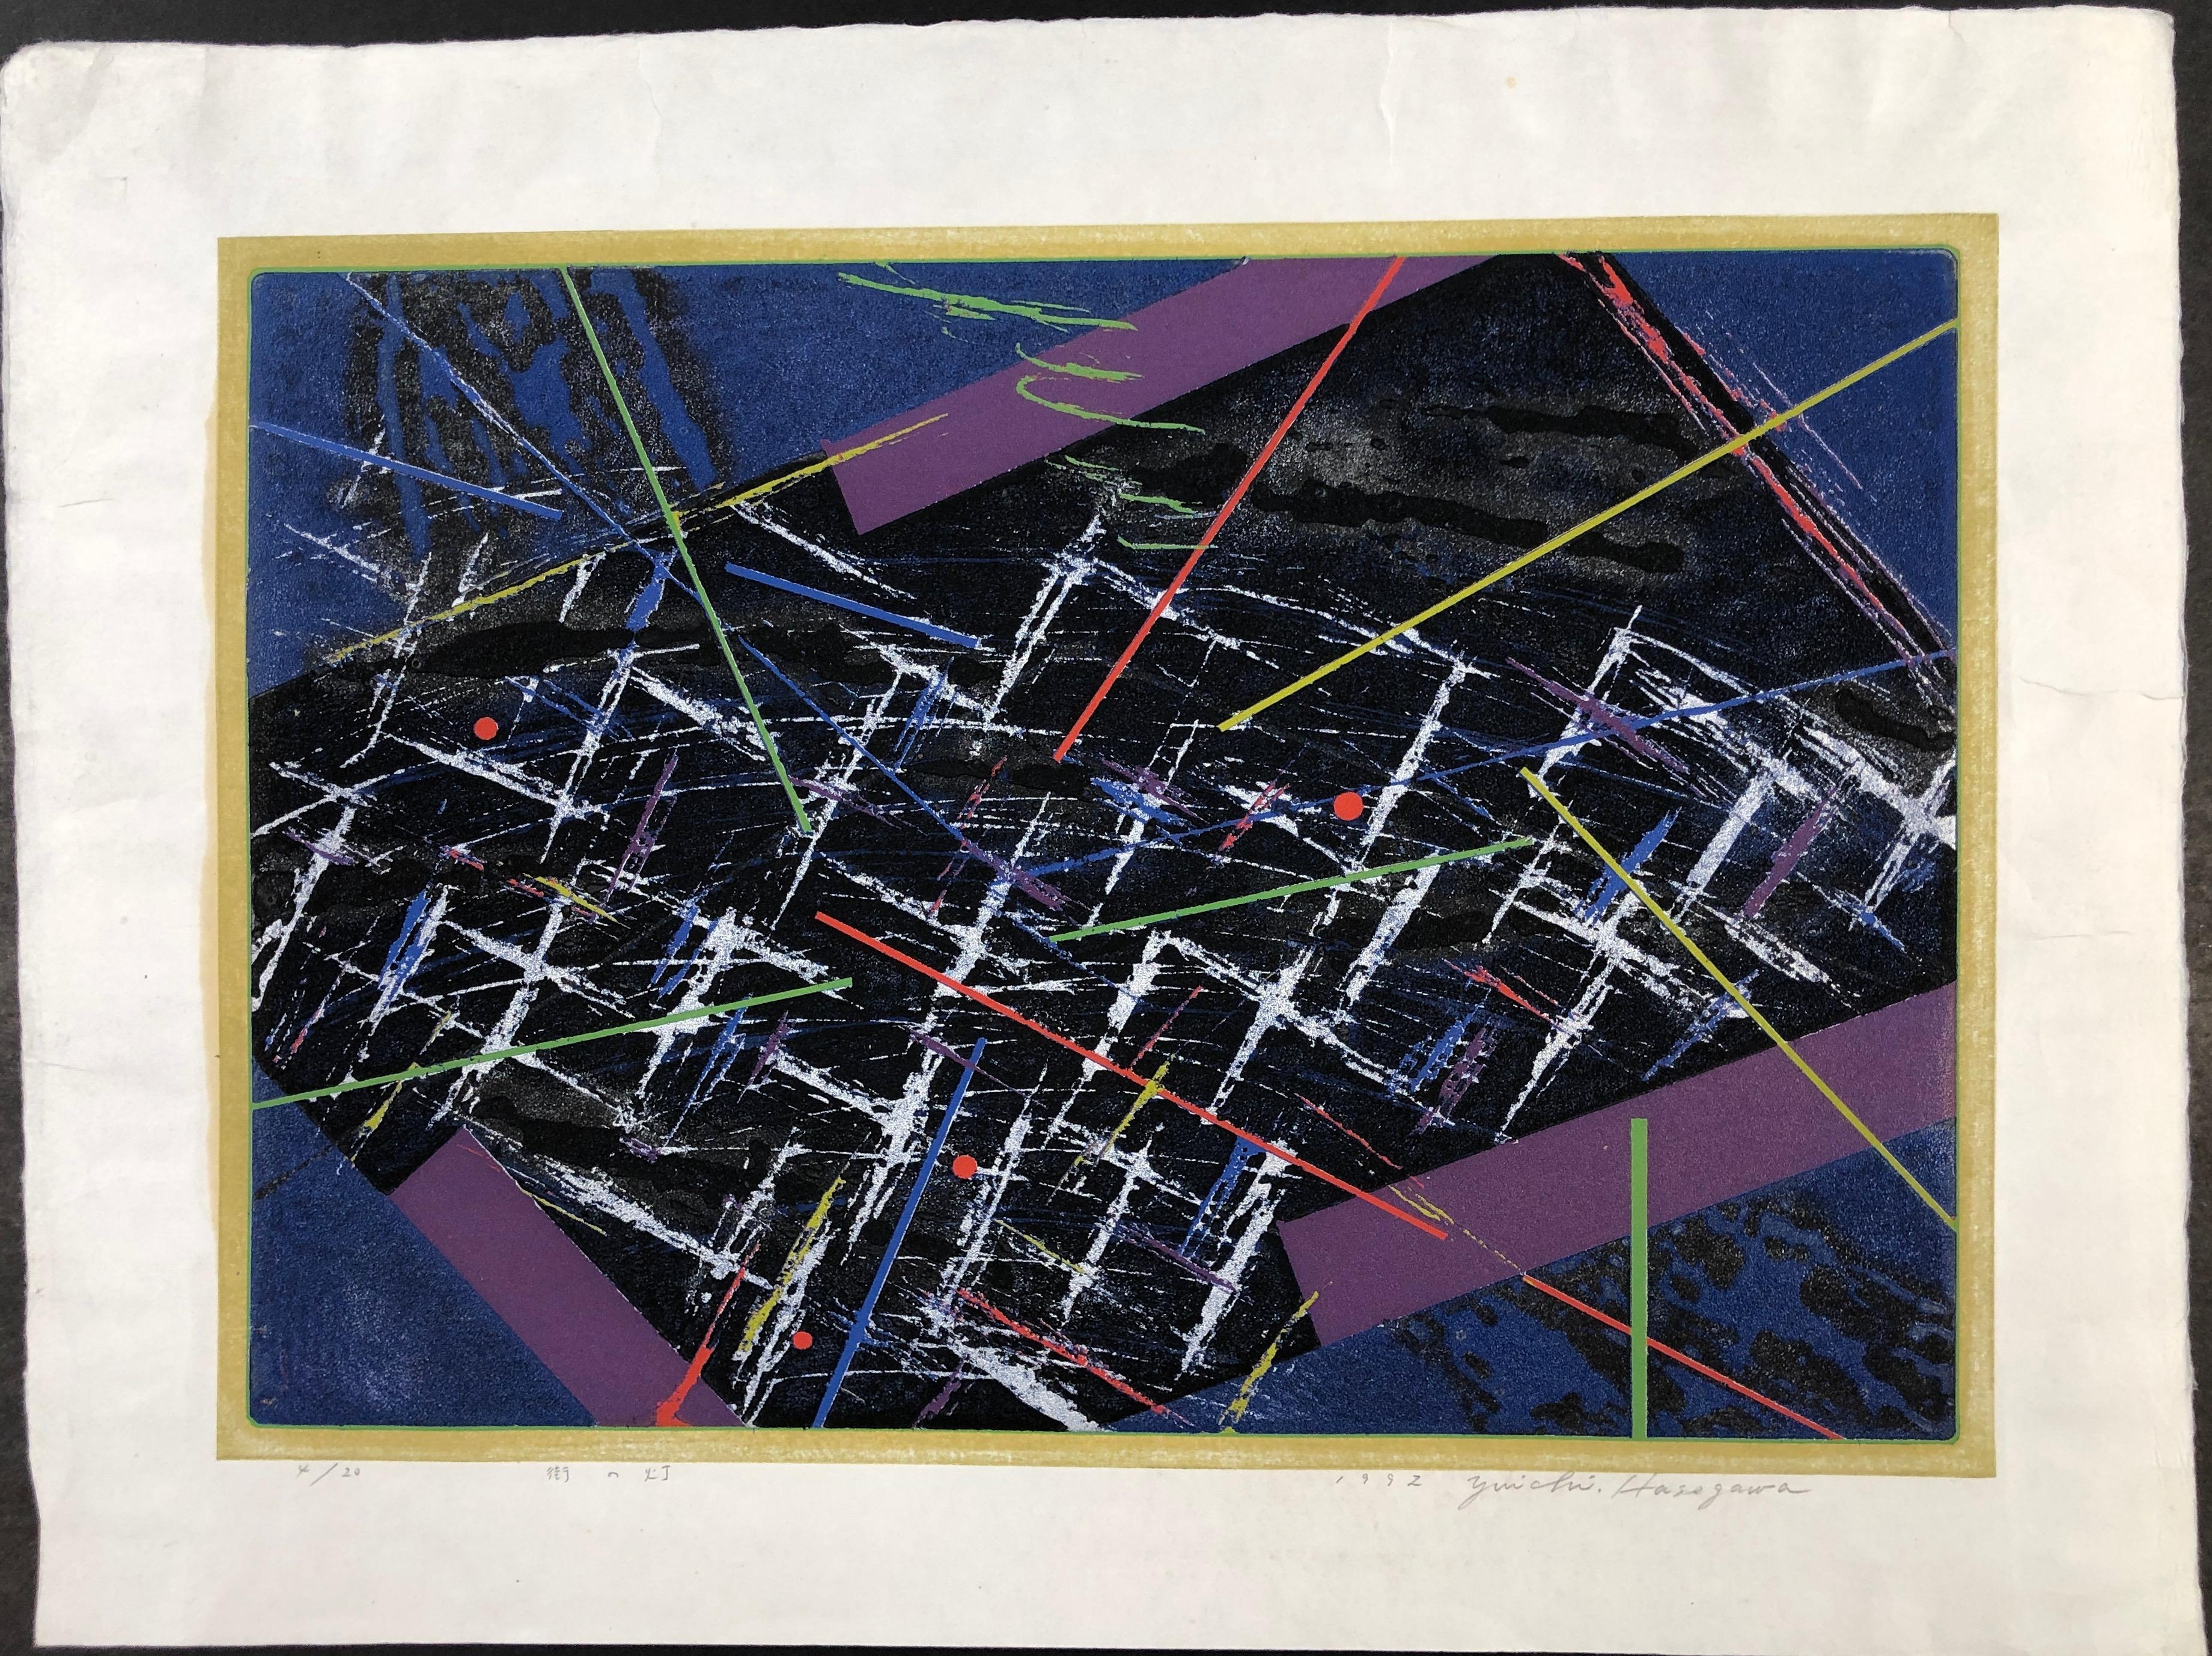 Earth in Blue, Japanese woodblock print, limited edition, purple, blue, silver